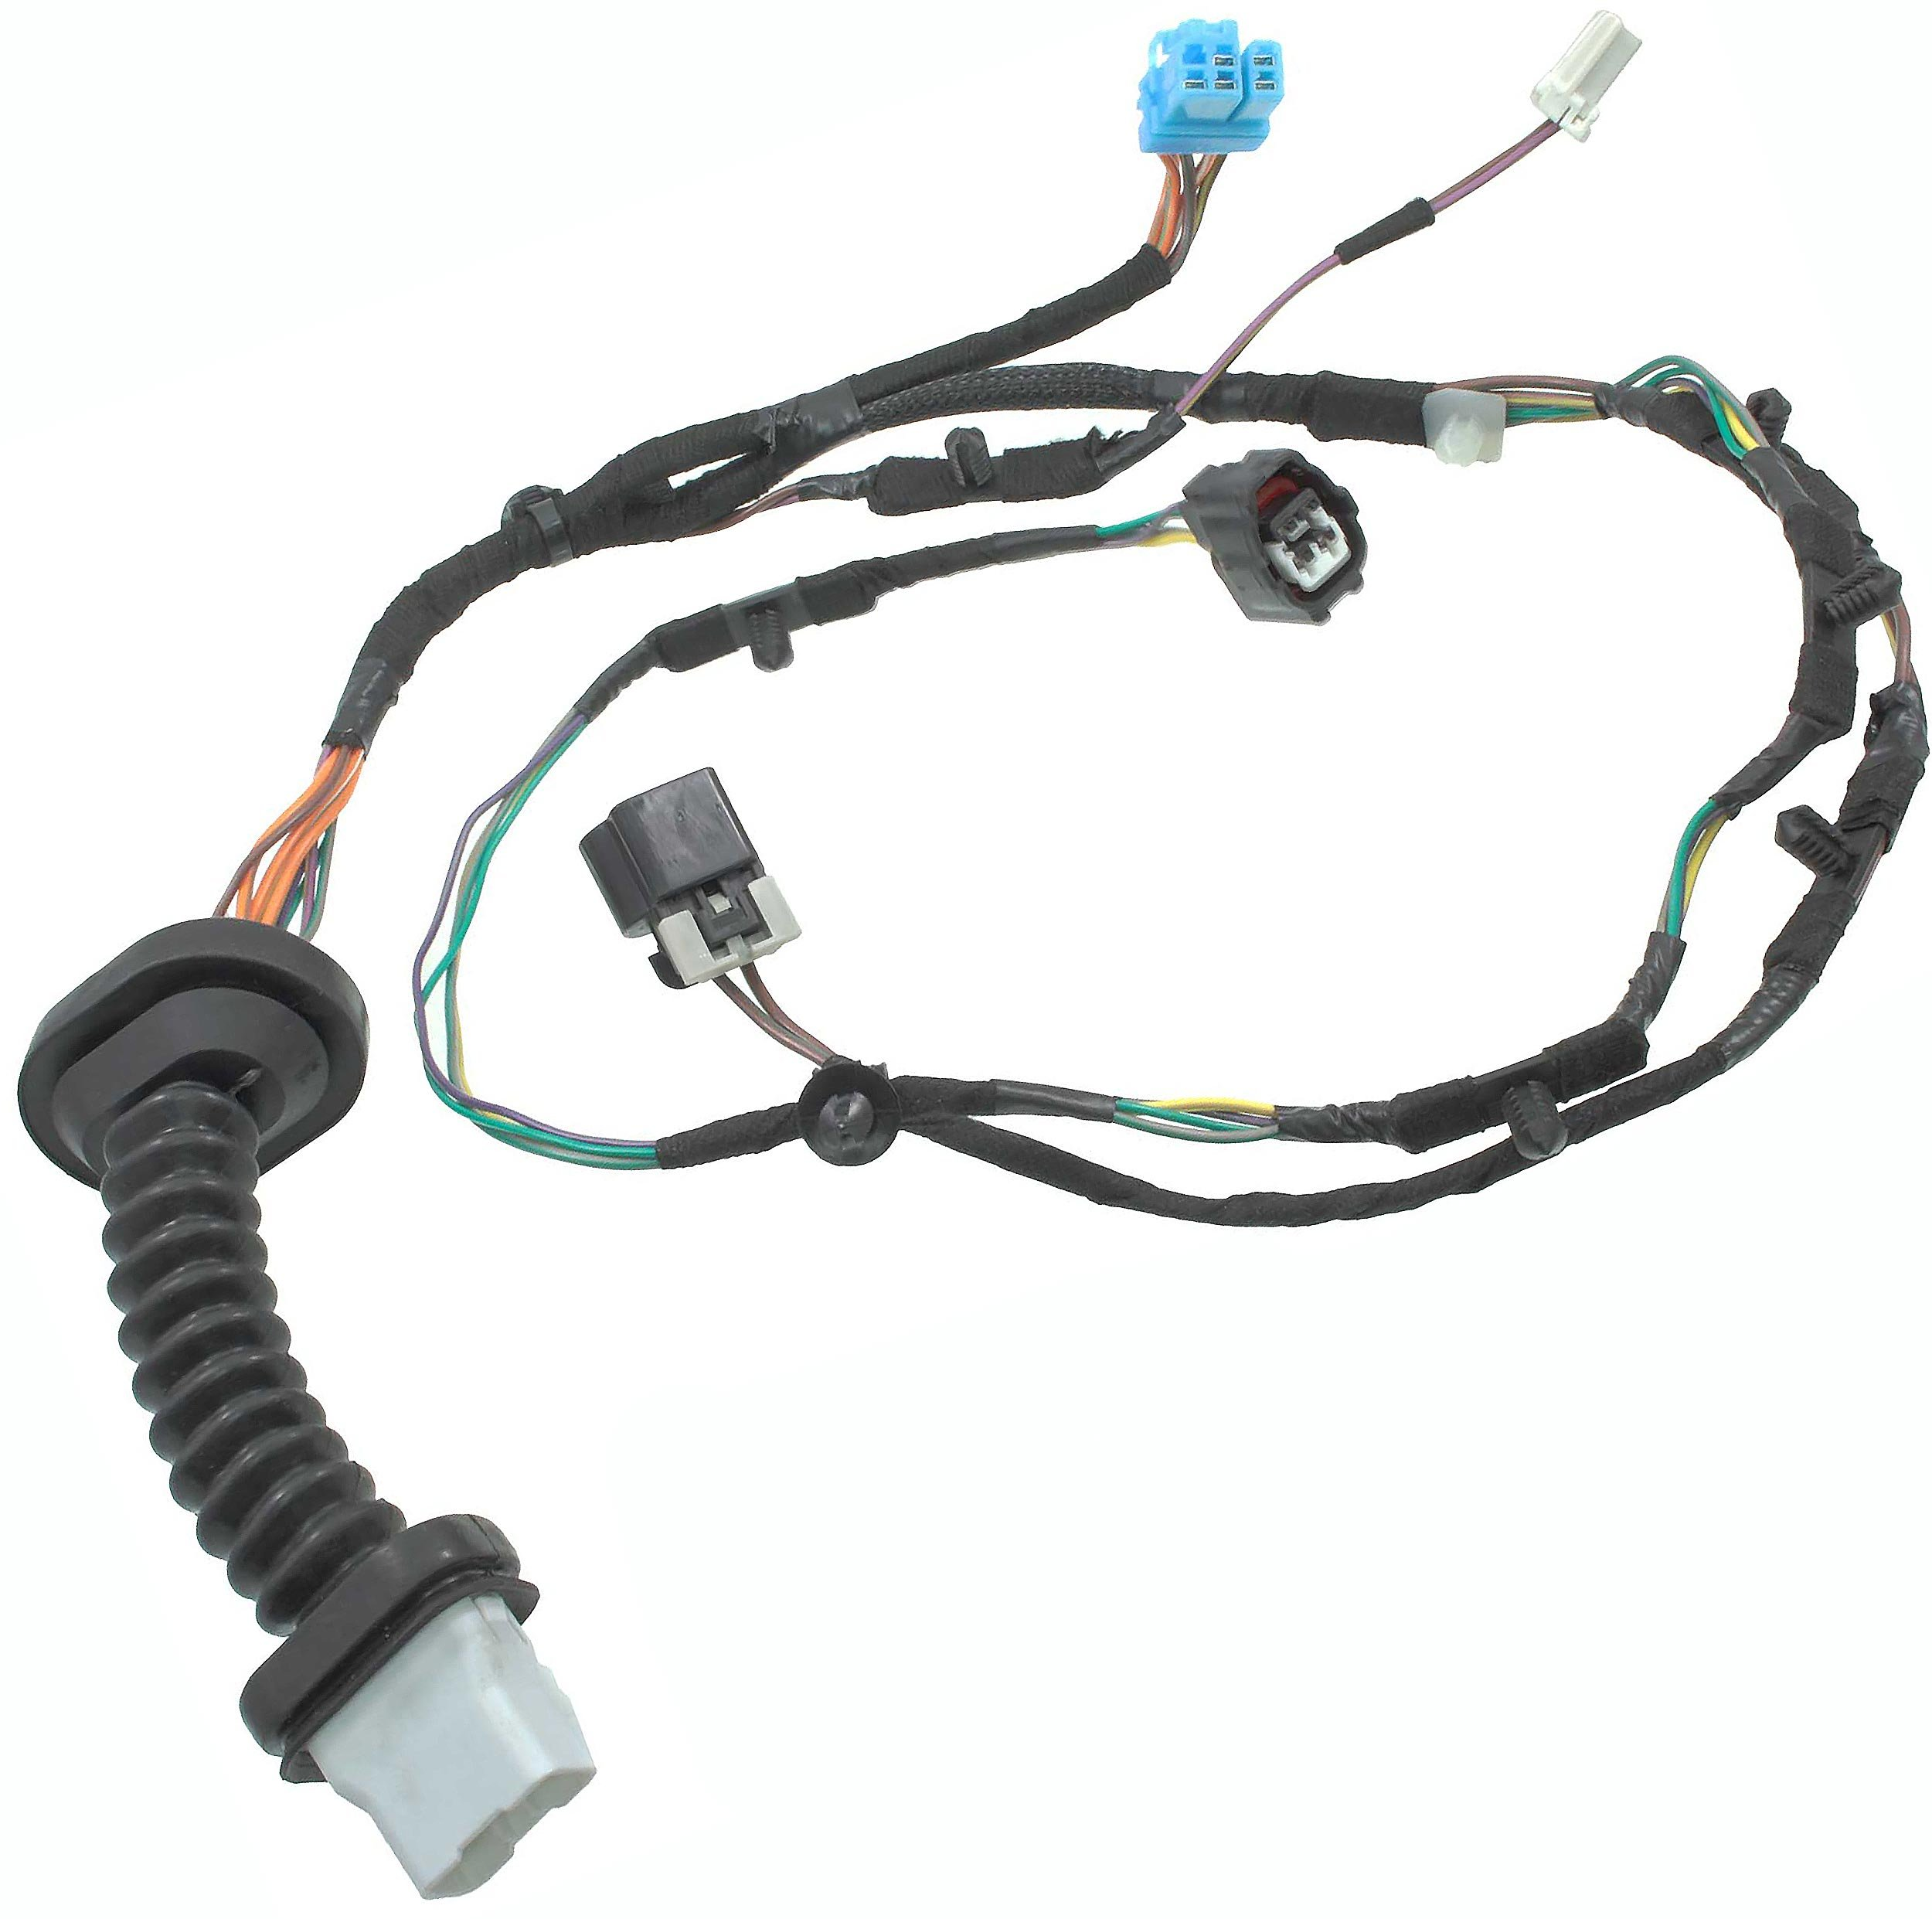 Amazon.com: APDTY 756617 Power Door Lock Wire Wiring Pigtail Connector  Harness Replacement For Rear Left or Rear Right Door On 2004-2005 Dodge Ram  1500 2500 3500 Crew Quad Cab Pickup (Replaces 56051931AB): AutomotiveAmazon.com